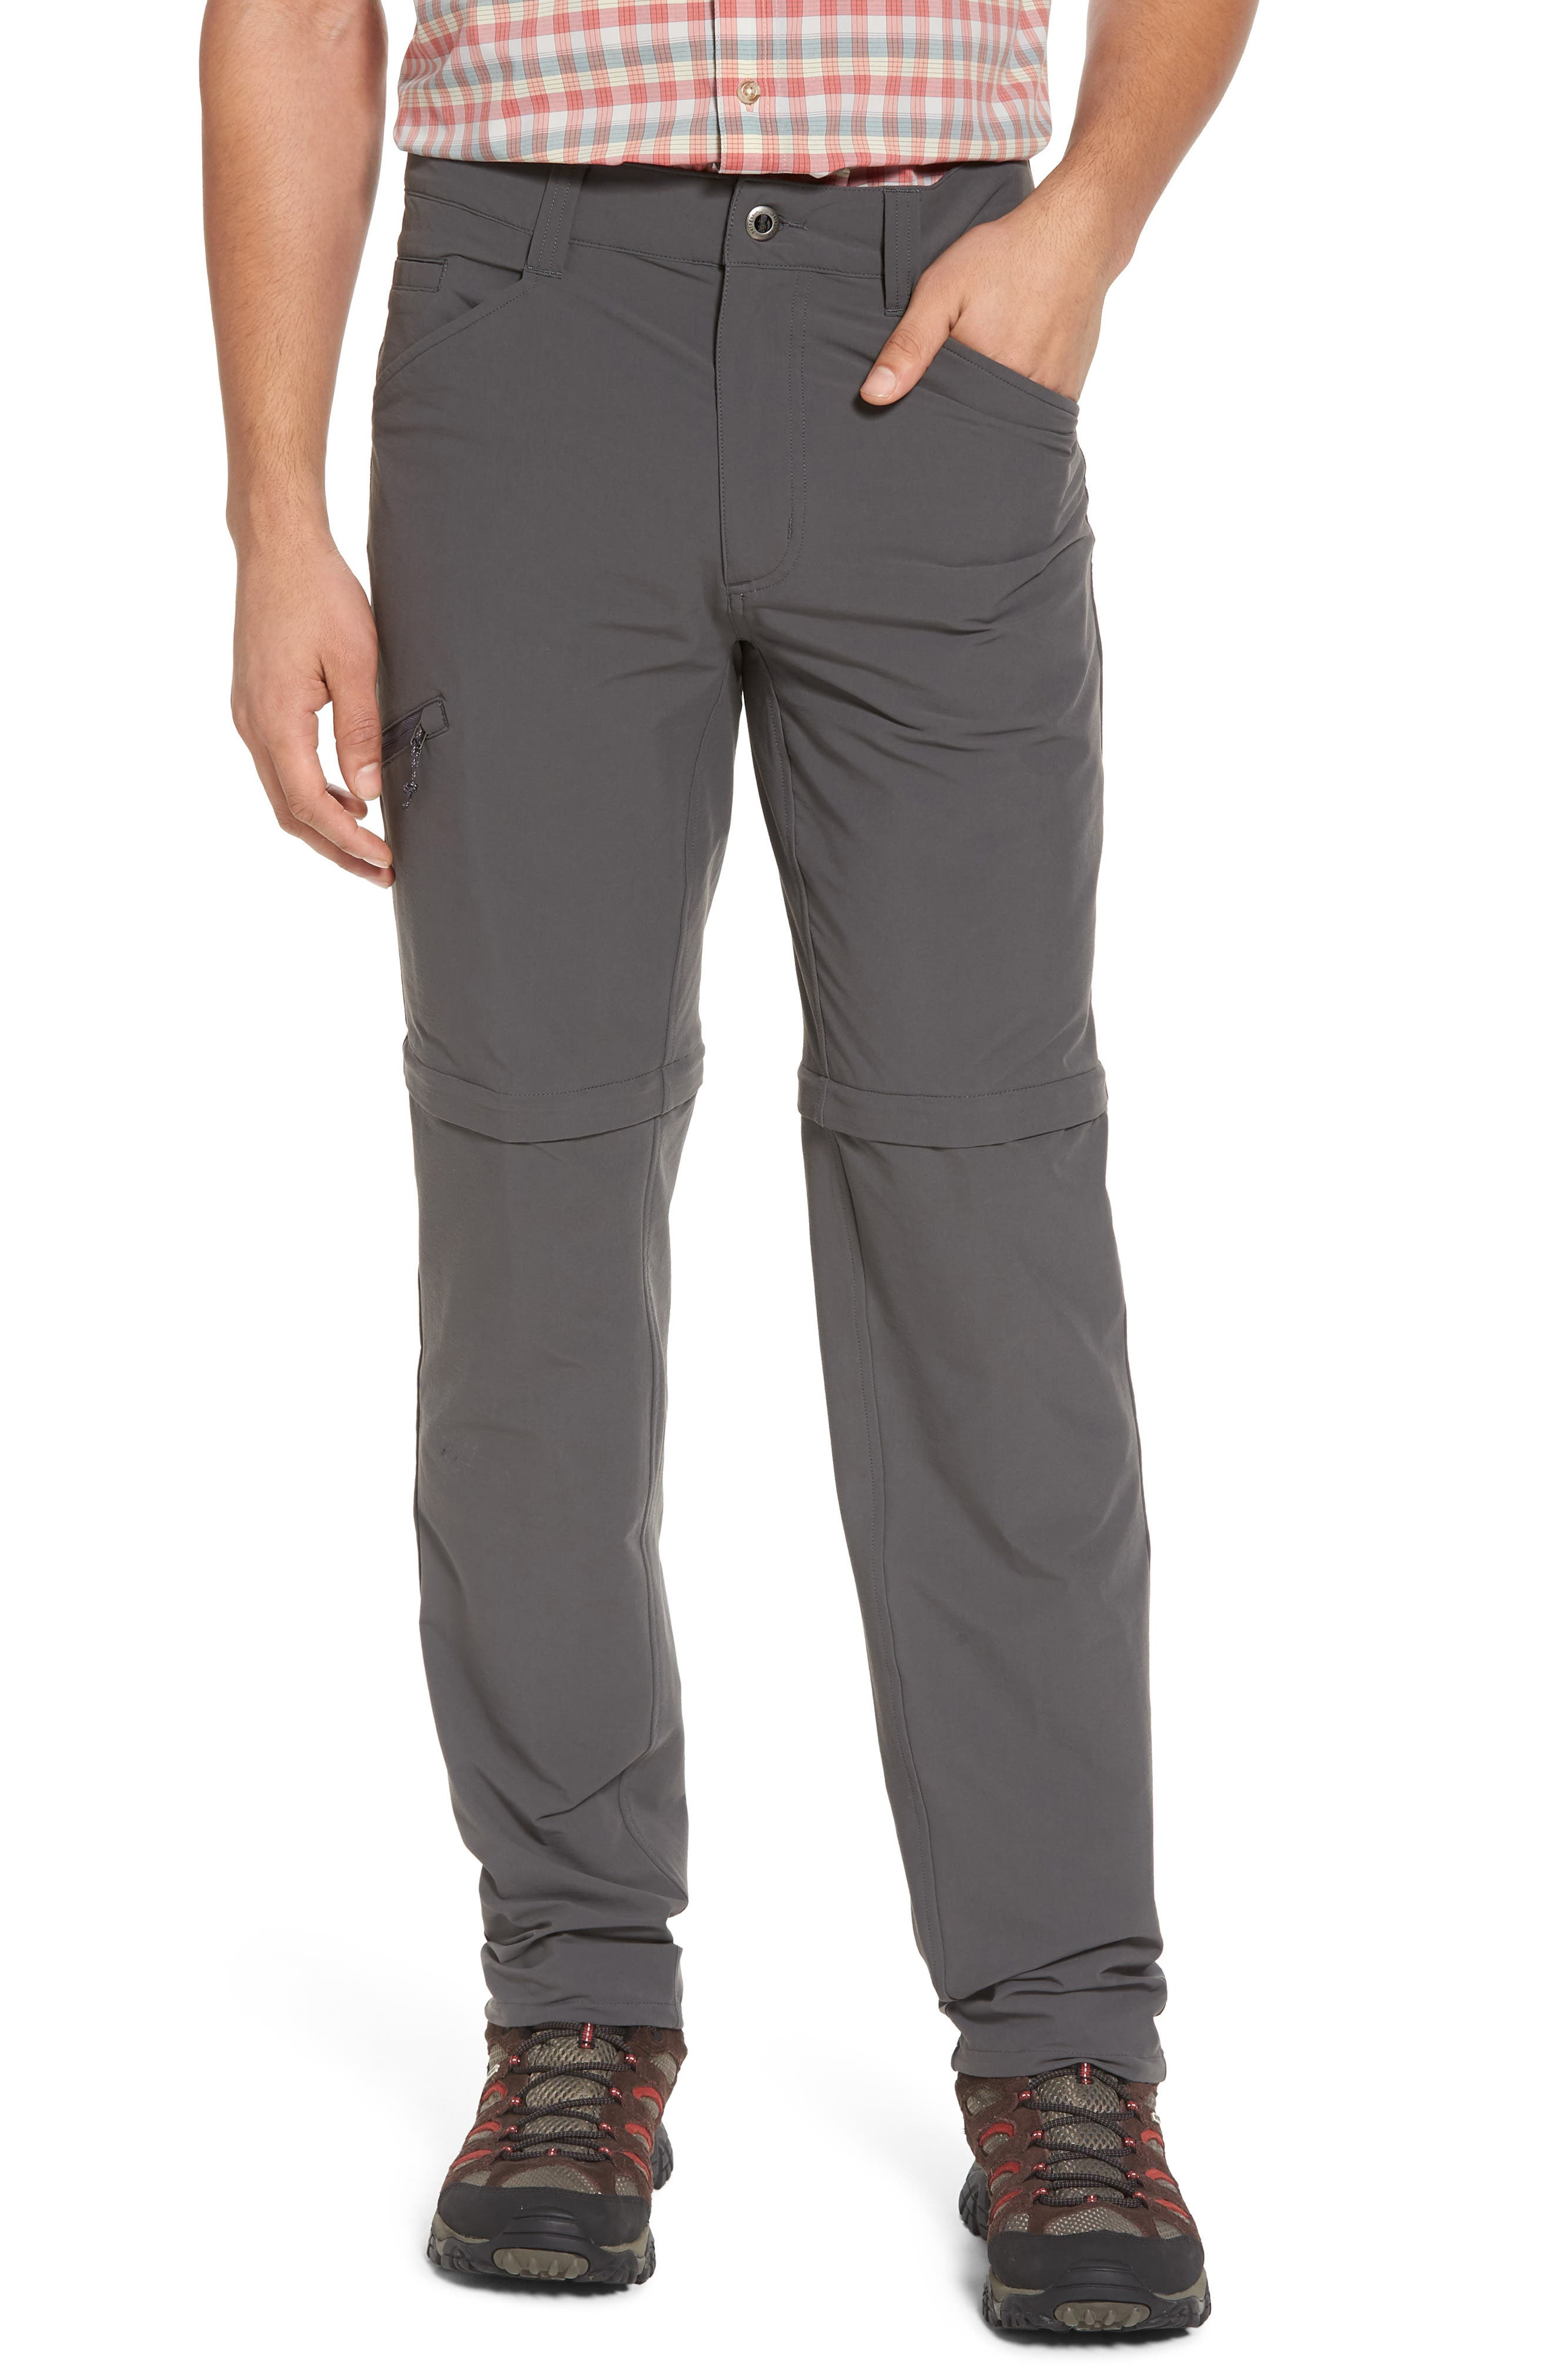 M's Quandry Convertible Pants,                         Main,                         color, FORGE GREY